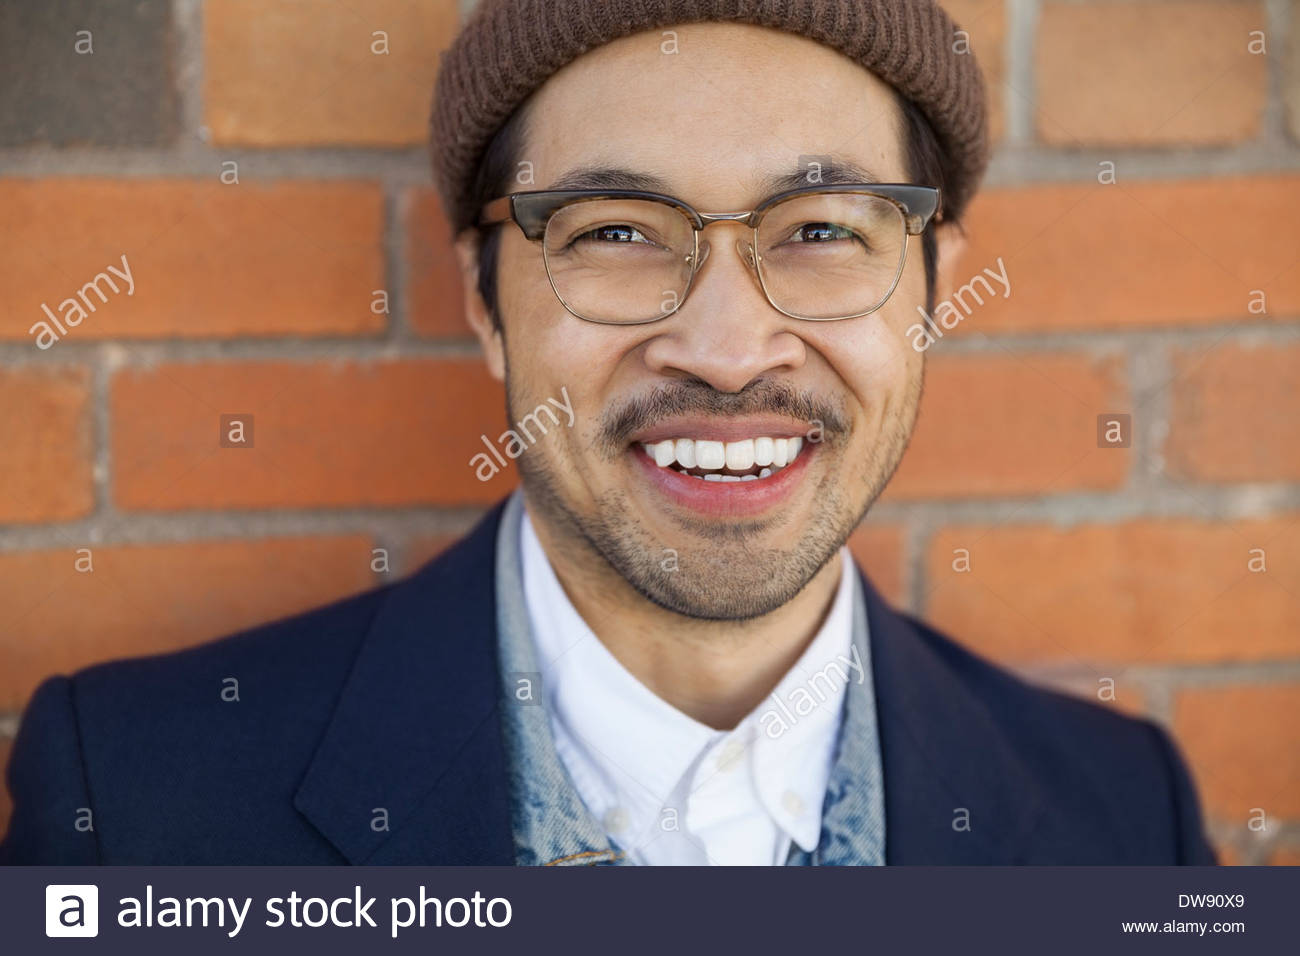 Close-up portrait of smiling man against brick wall - Stock Image